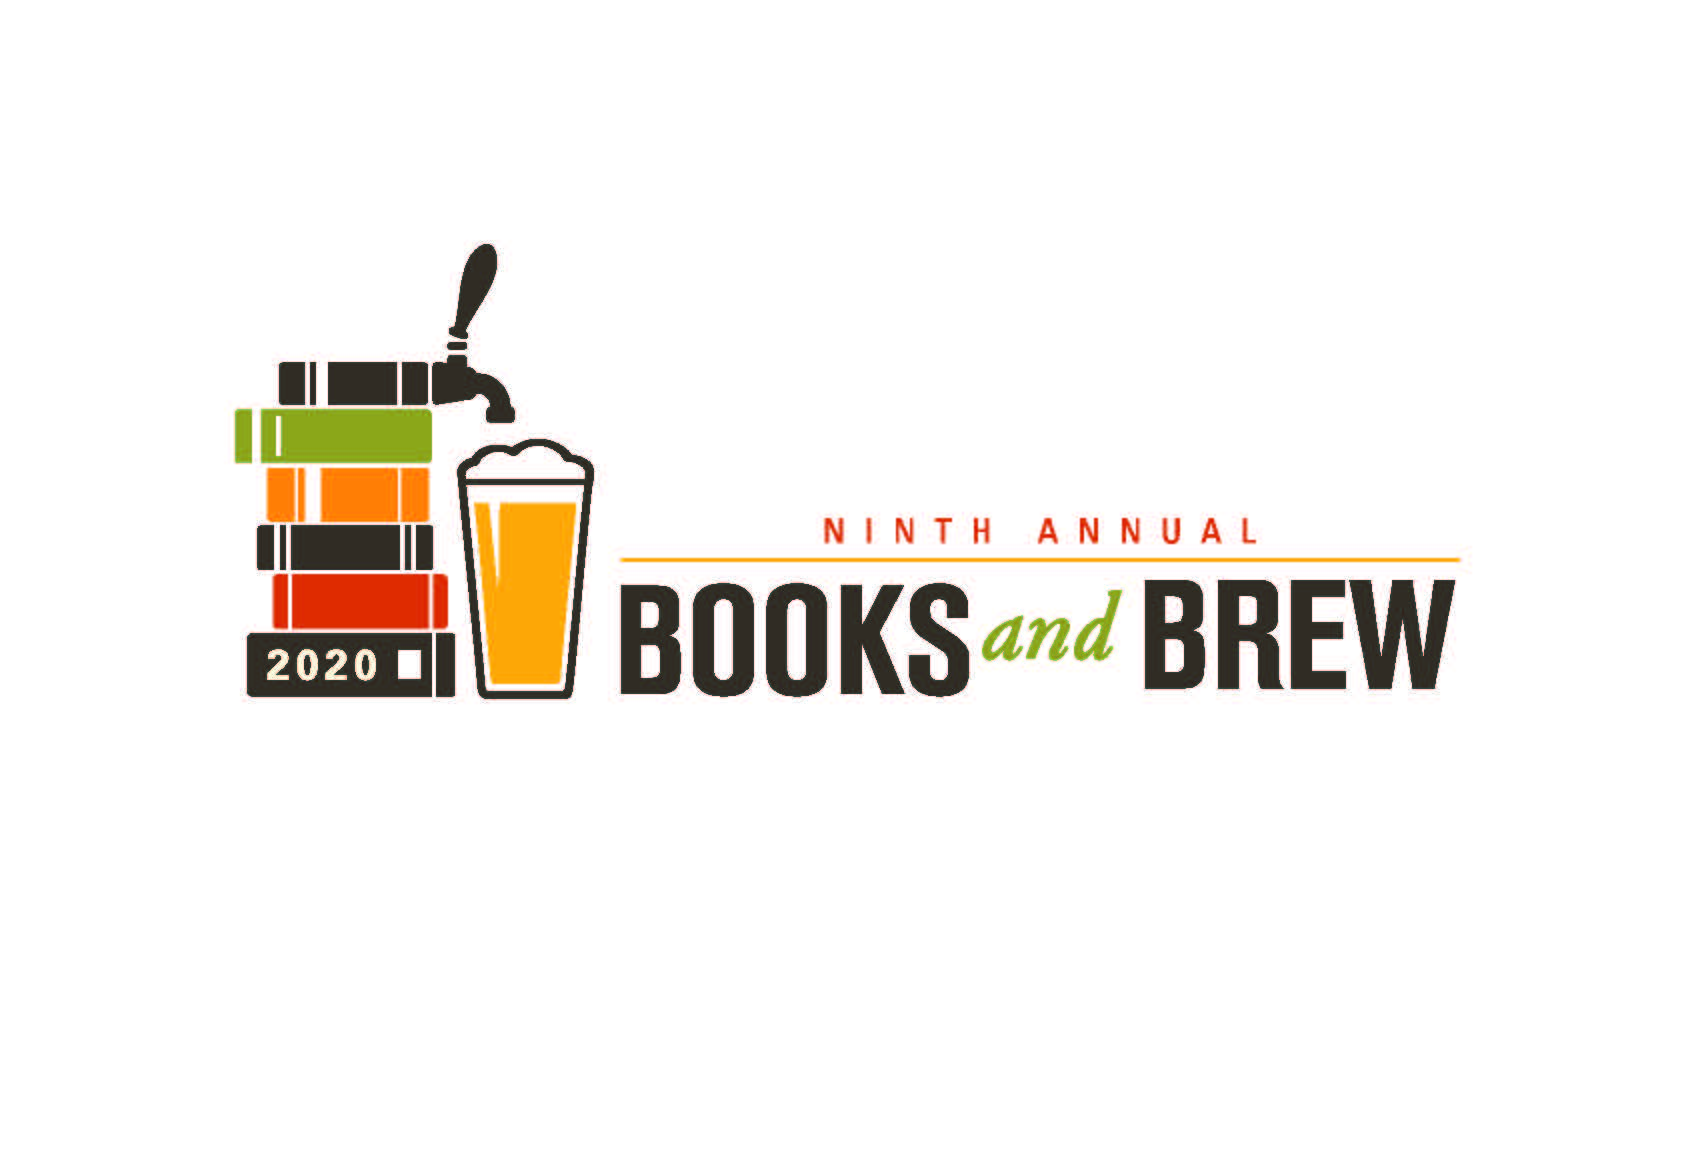 Books and Brew Event Logo